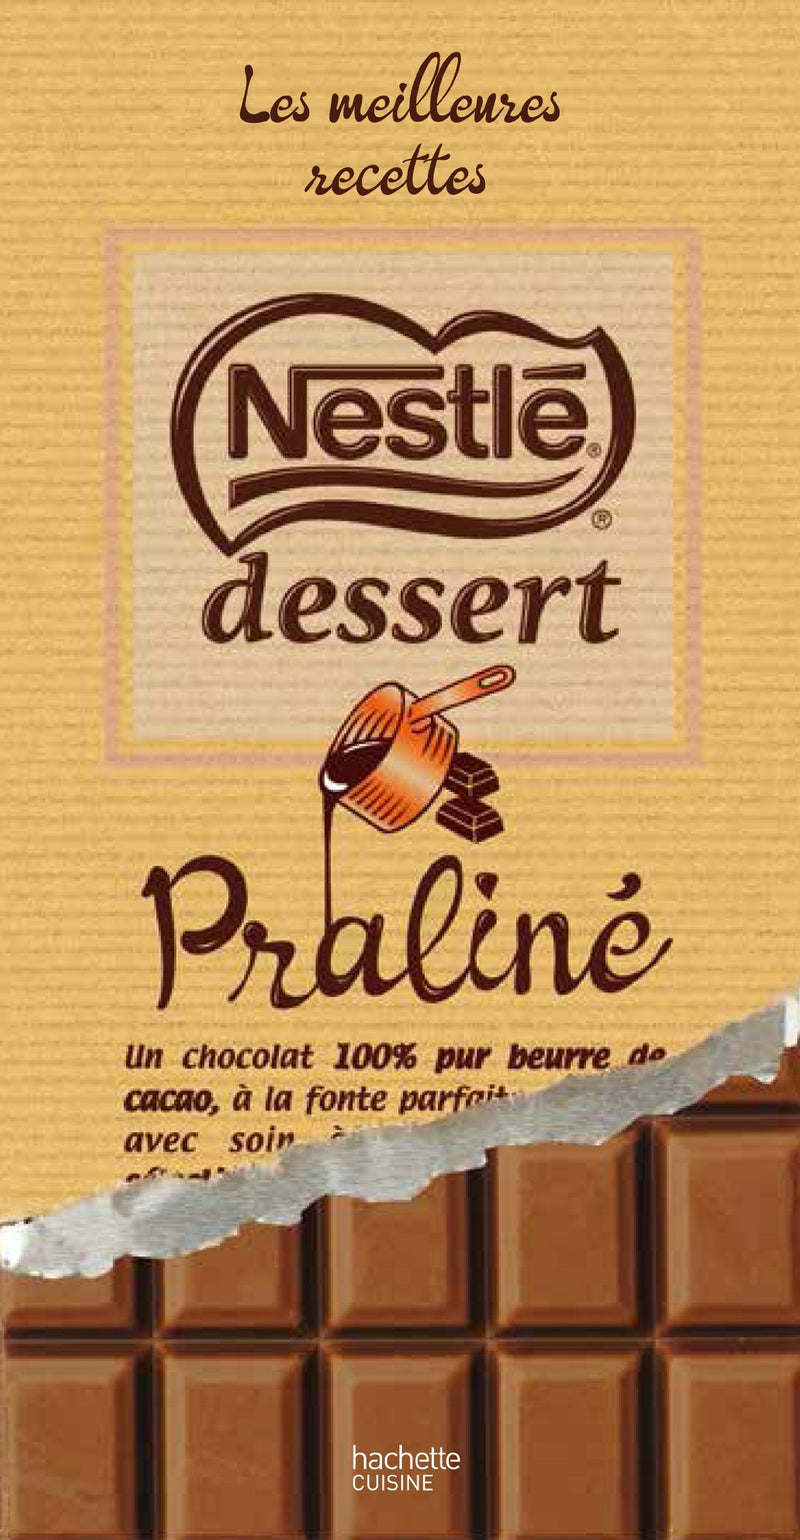 Chocolat au lait praliné - Milk chocolate with praline - Dessert. Nestlé 170g